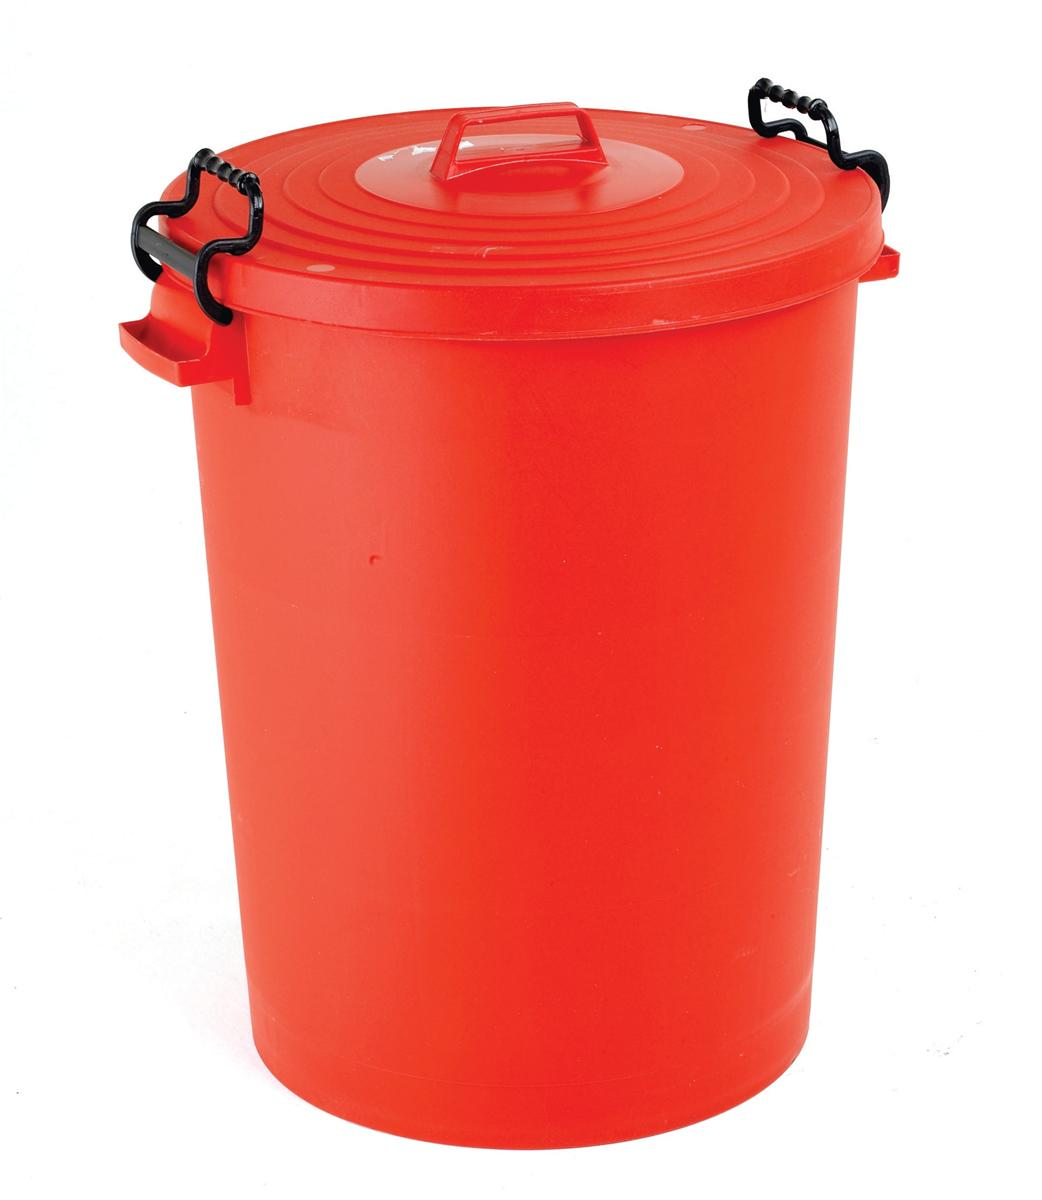 Image for Dustbin with Red Lid 110 Litres